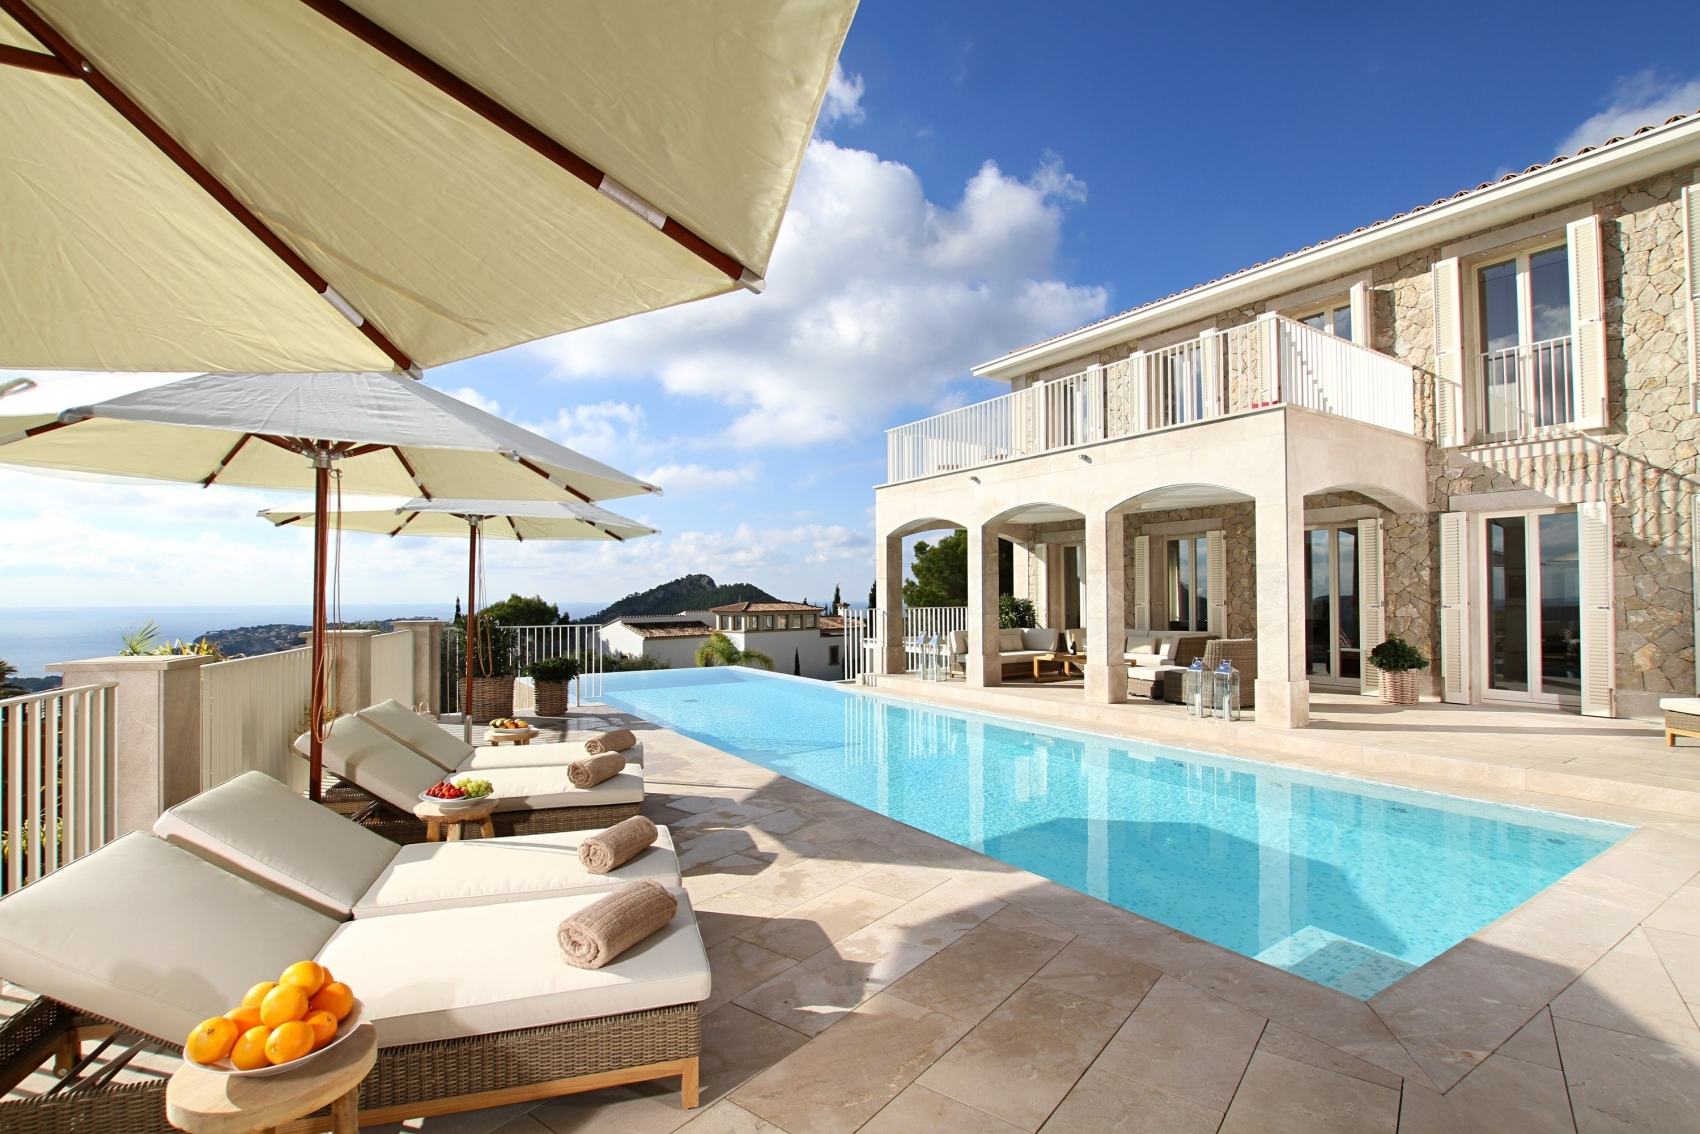 Outstanding luxury villa with fantastic views in Port d'Andratx